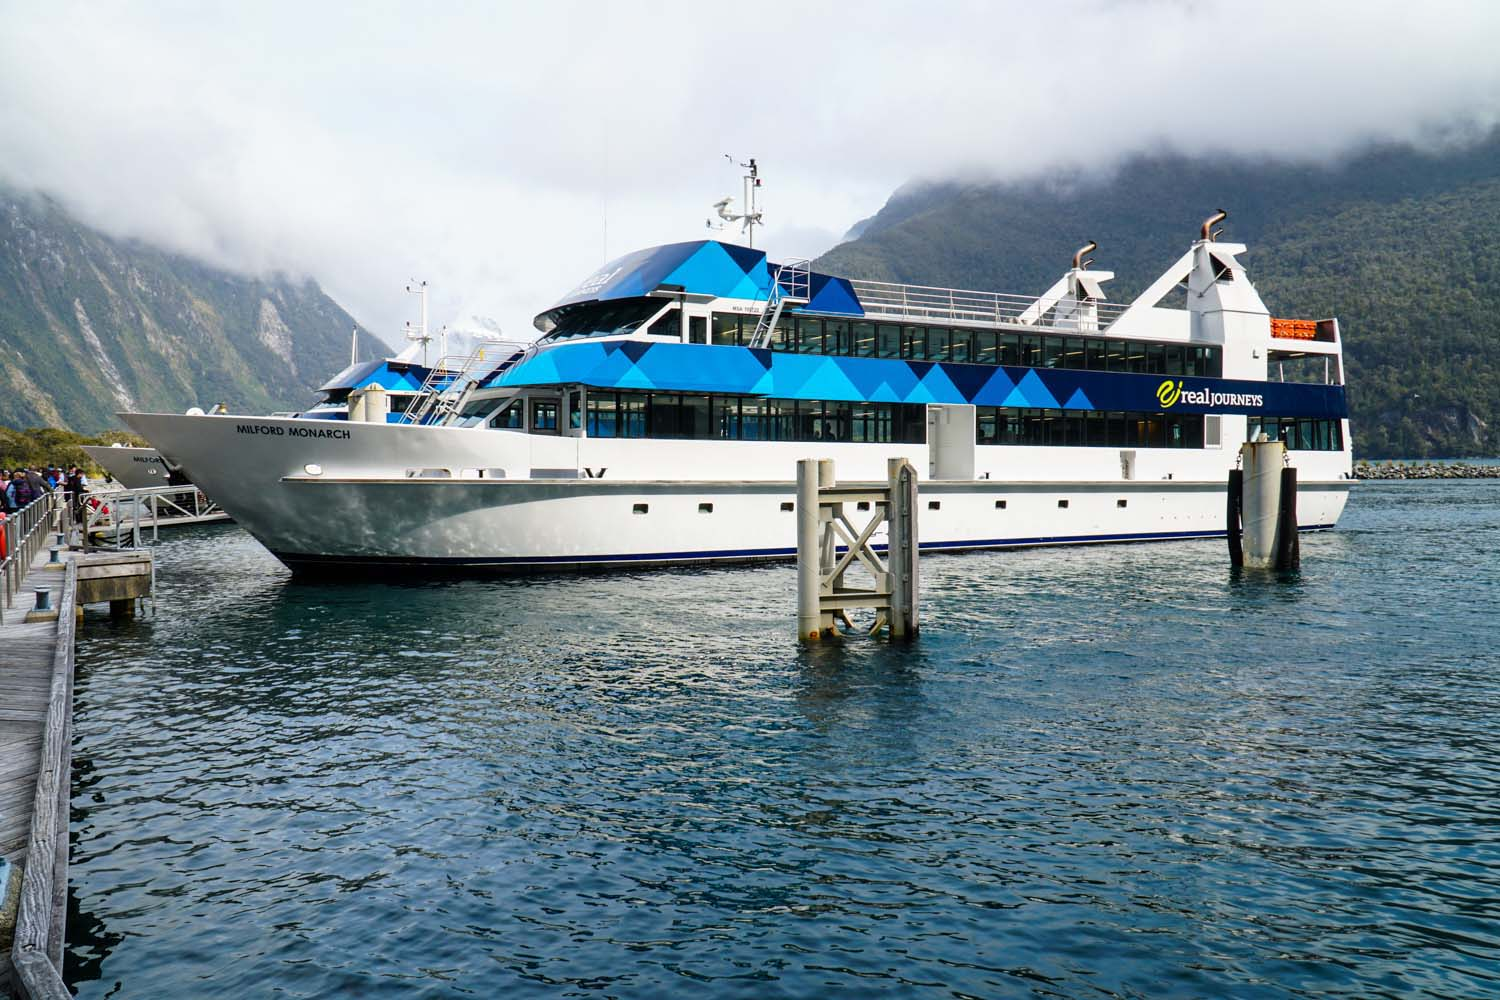 Real Journeys Milford Monarch at dock